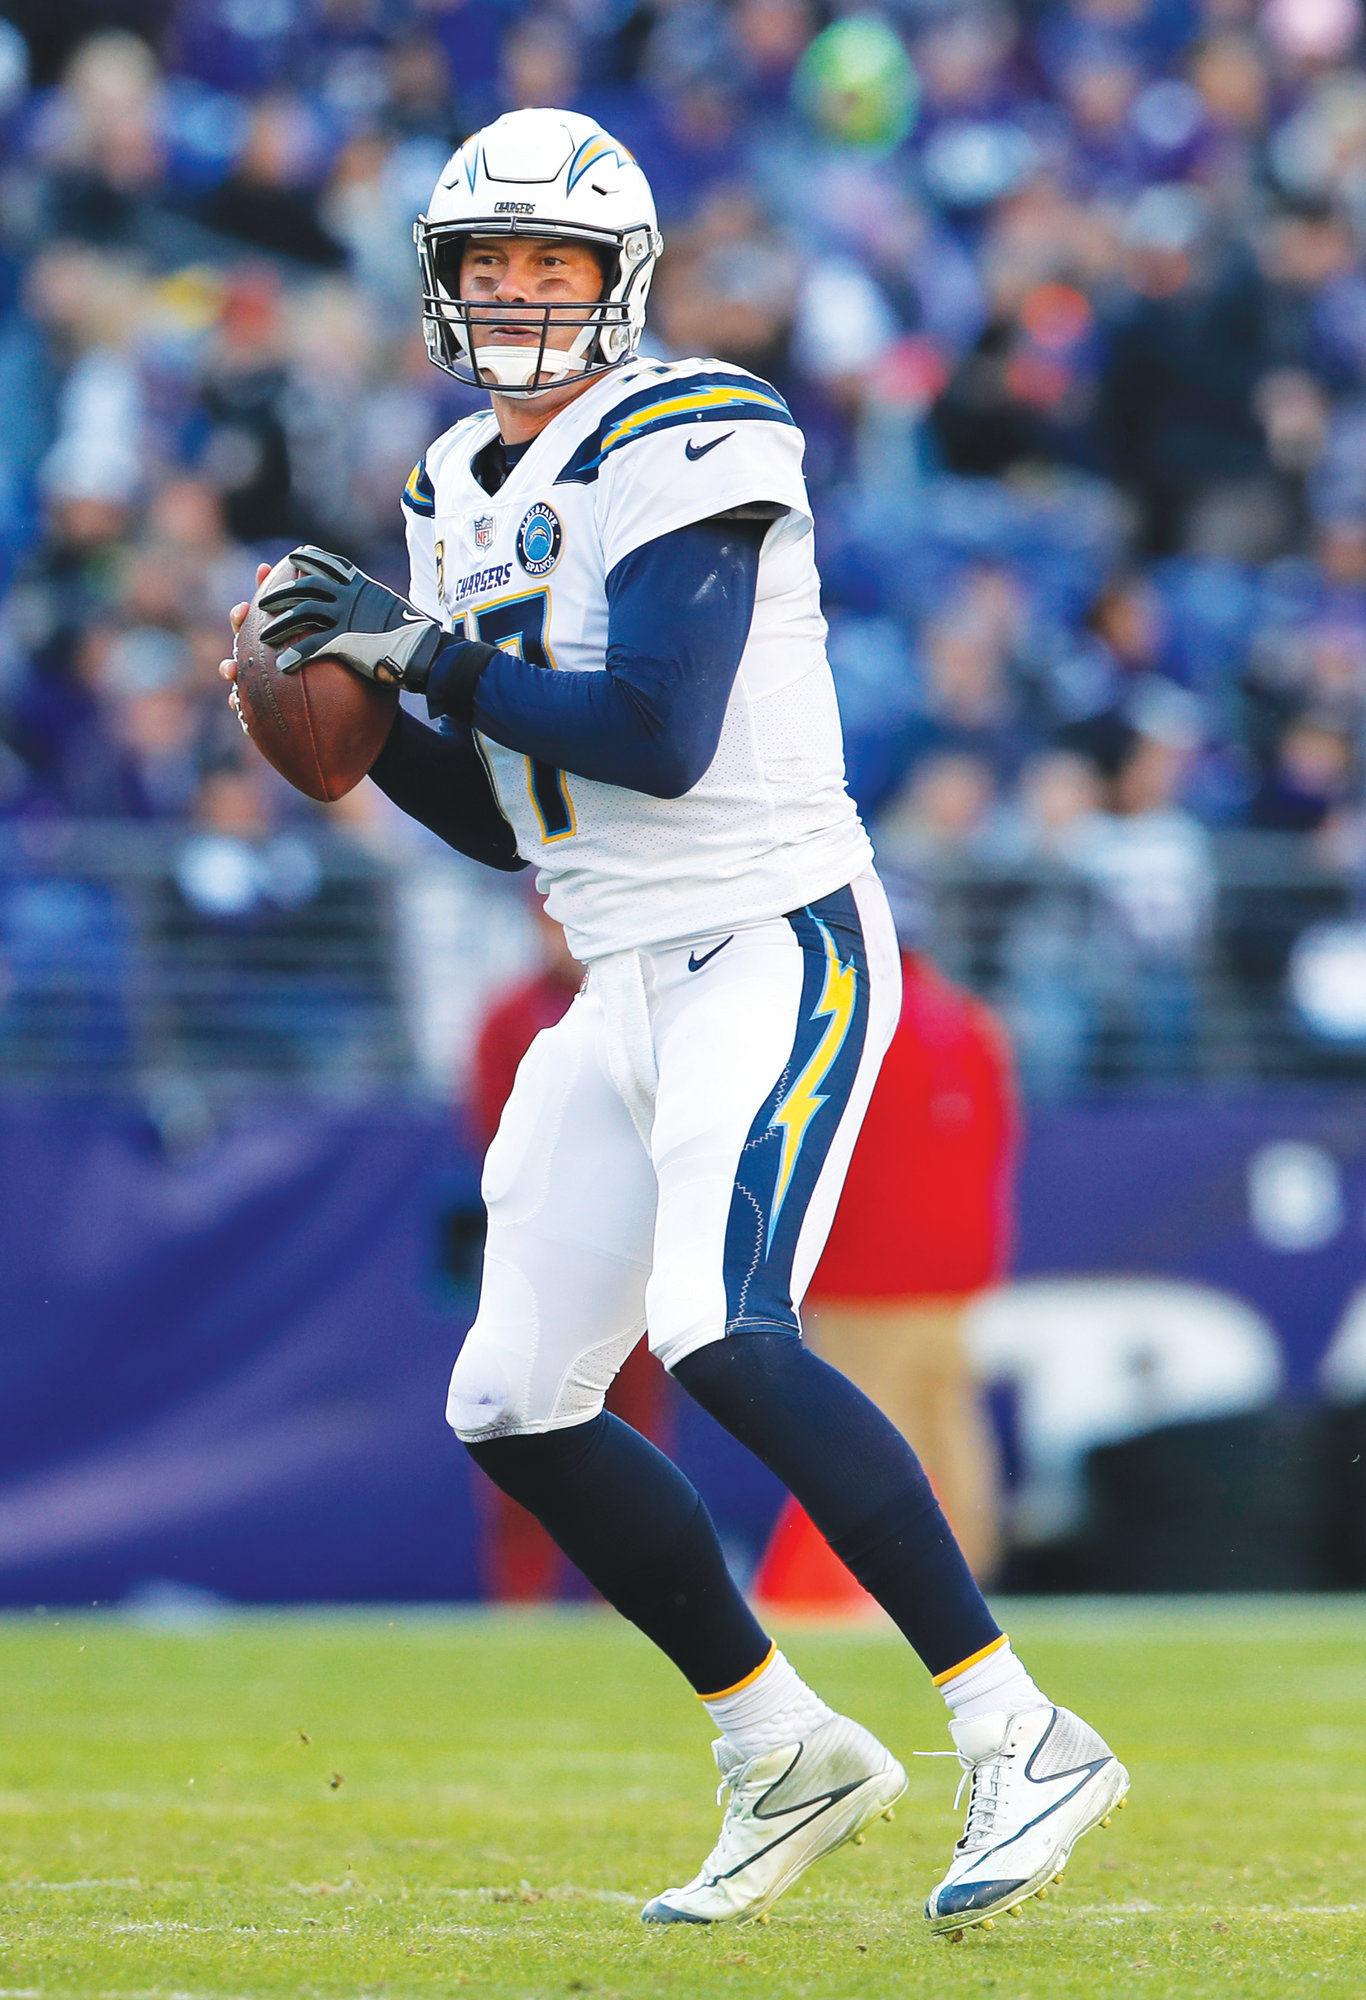 THE ASSOCIATED PRESS  Los Angeles Chargers quarterback Philip Rivers looks for a receiver in the NFL wild card playoff game against the Ravens on Sunday in Baltimore.